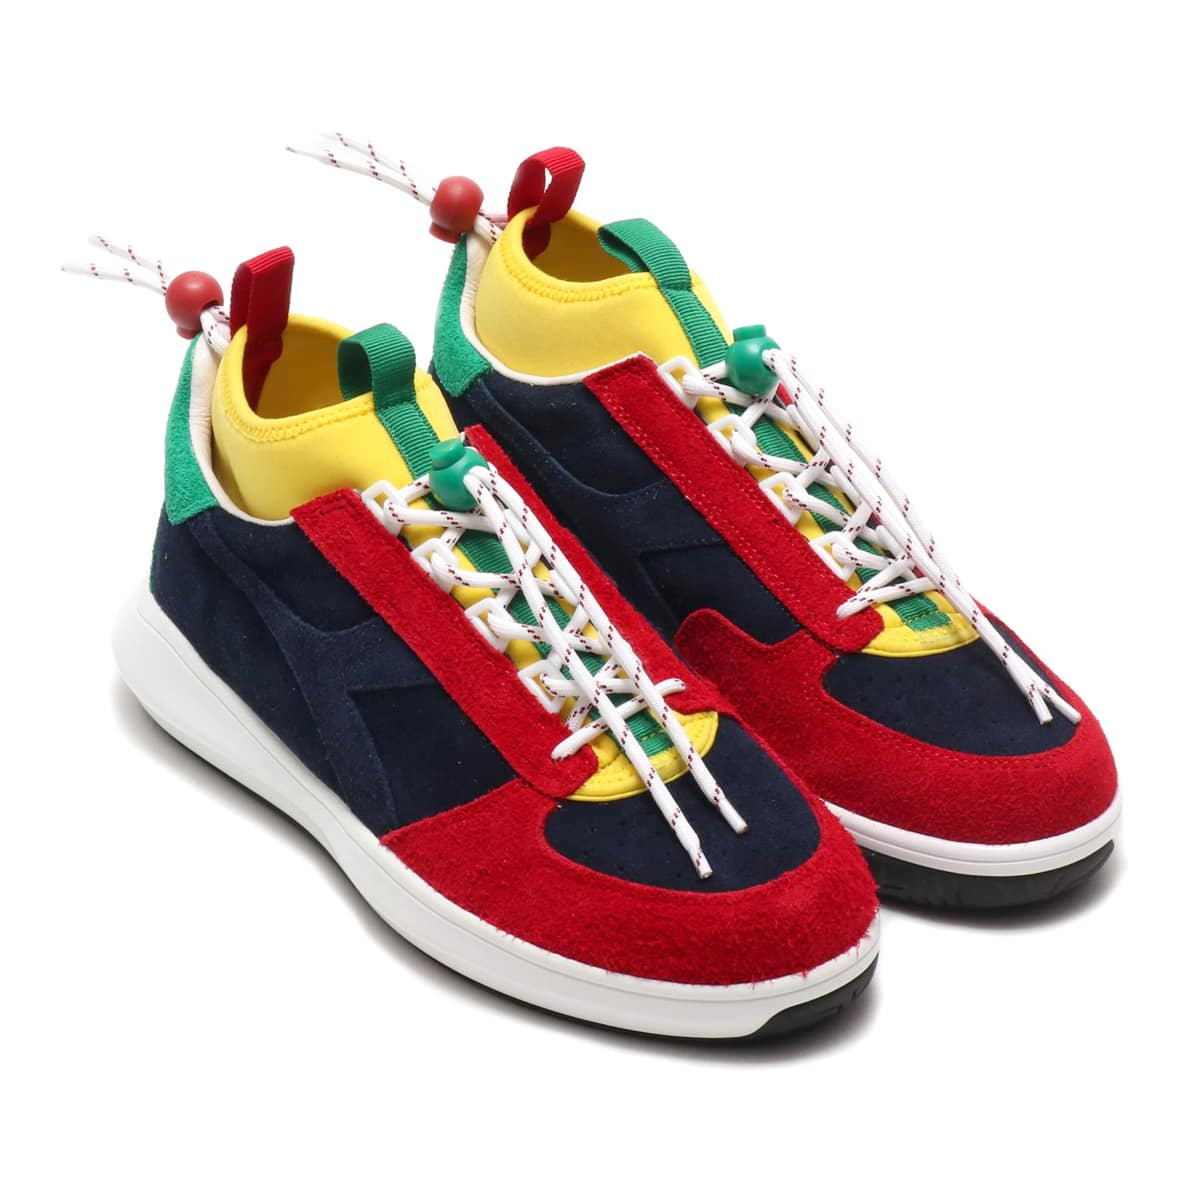 DIADORA B. ELITE SAILING S MULTI COLOR 19SP-I_photo_large